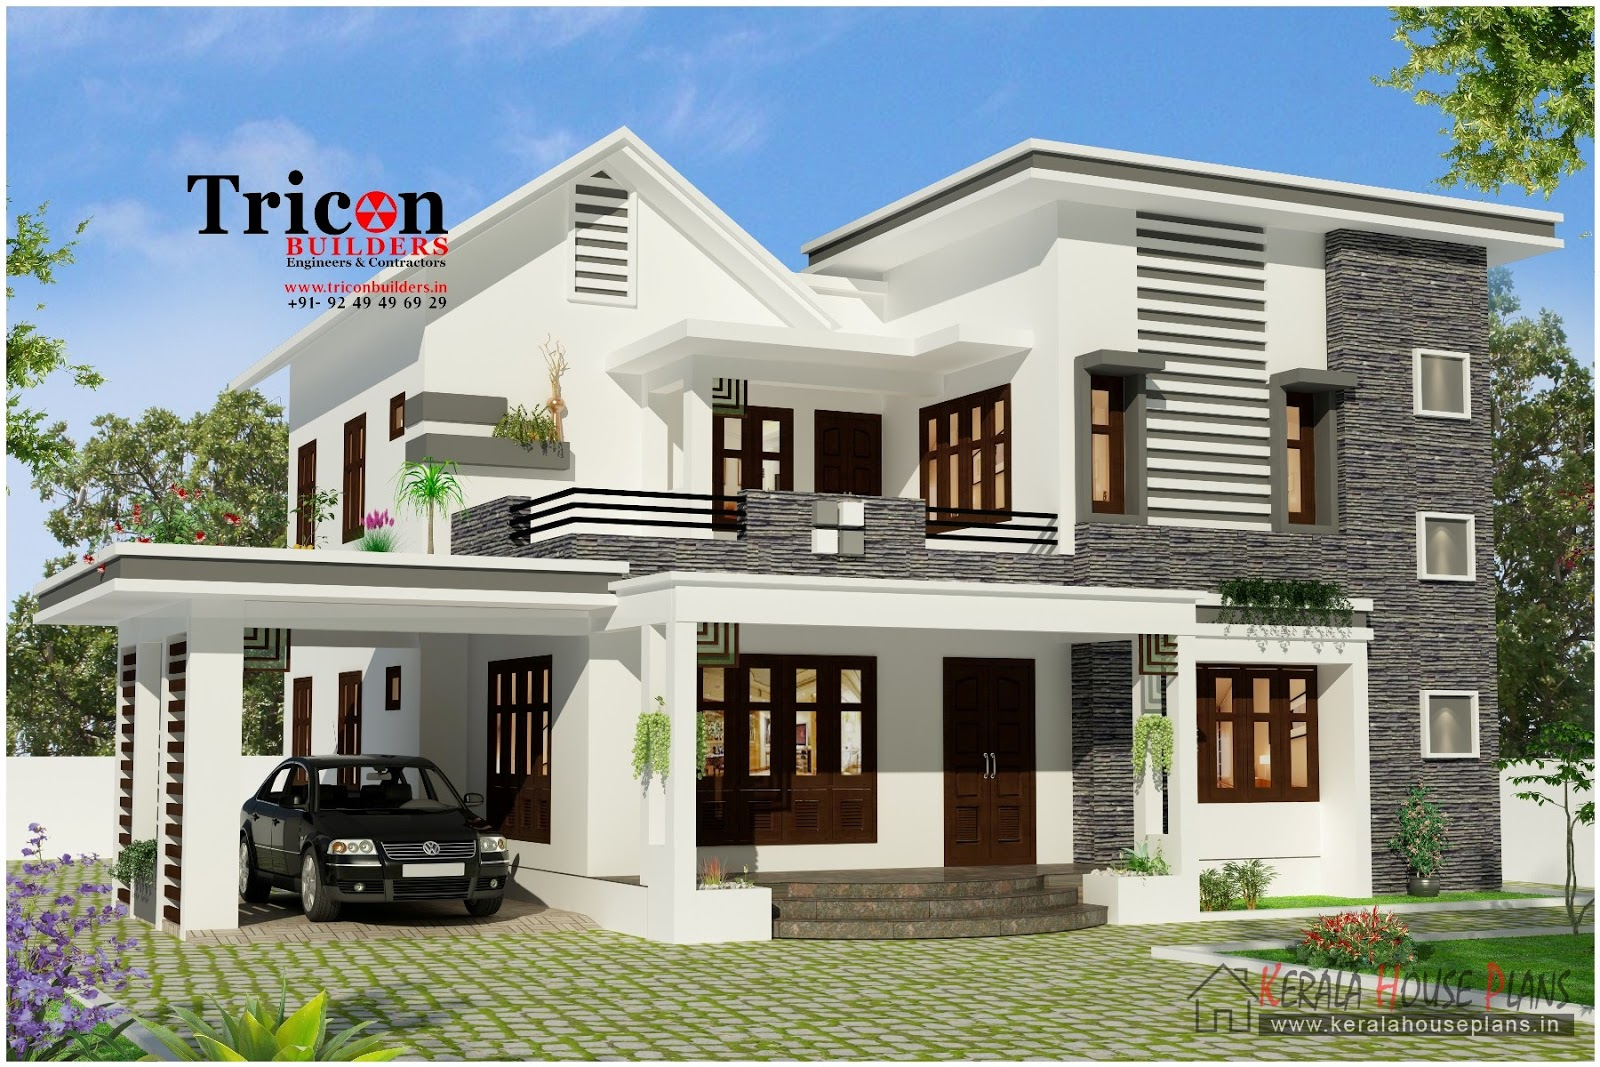 4 bedroom modern house design 2355 kerala house for House design plans with photos